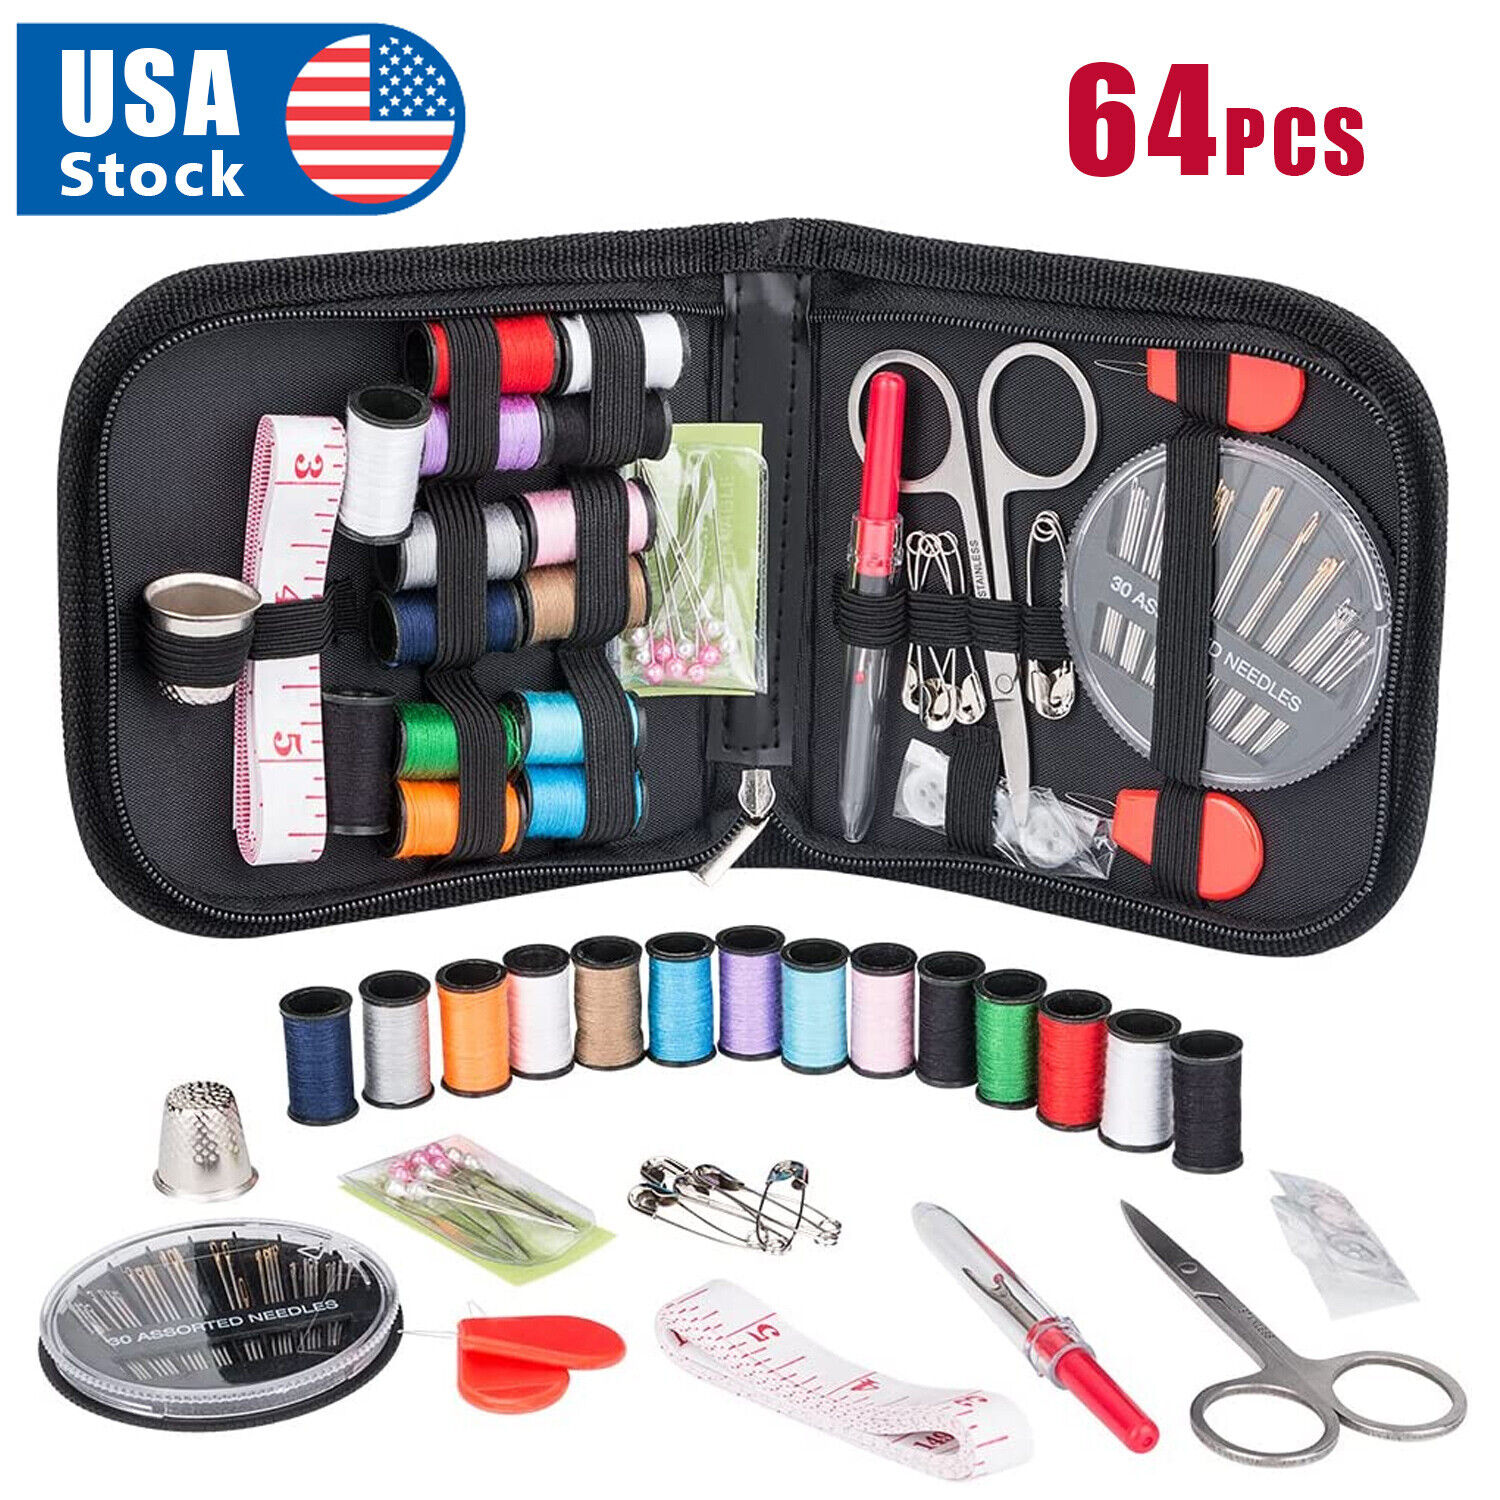 64Pcs Home Travel Thread Threader Needle Tape Measure Scissor Sewing Kit Collectibles